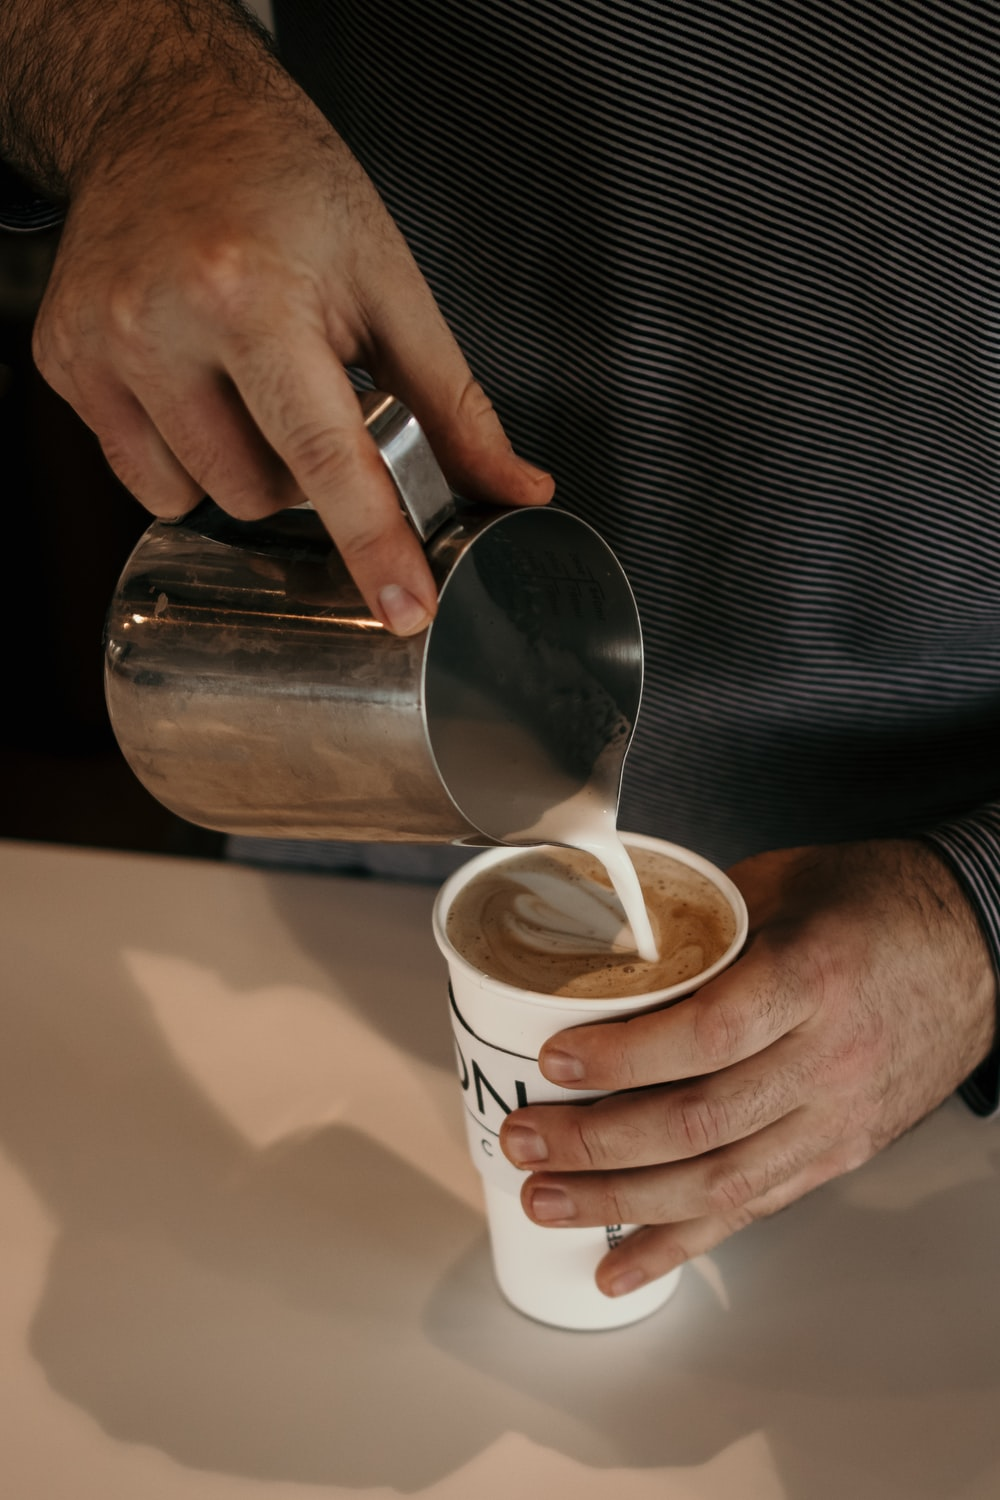 person holding stainless steel cup with white liquid